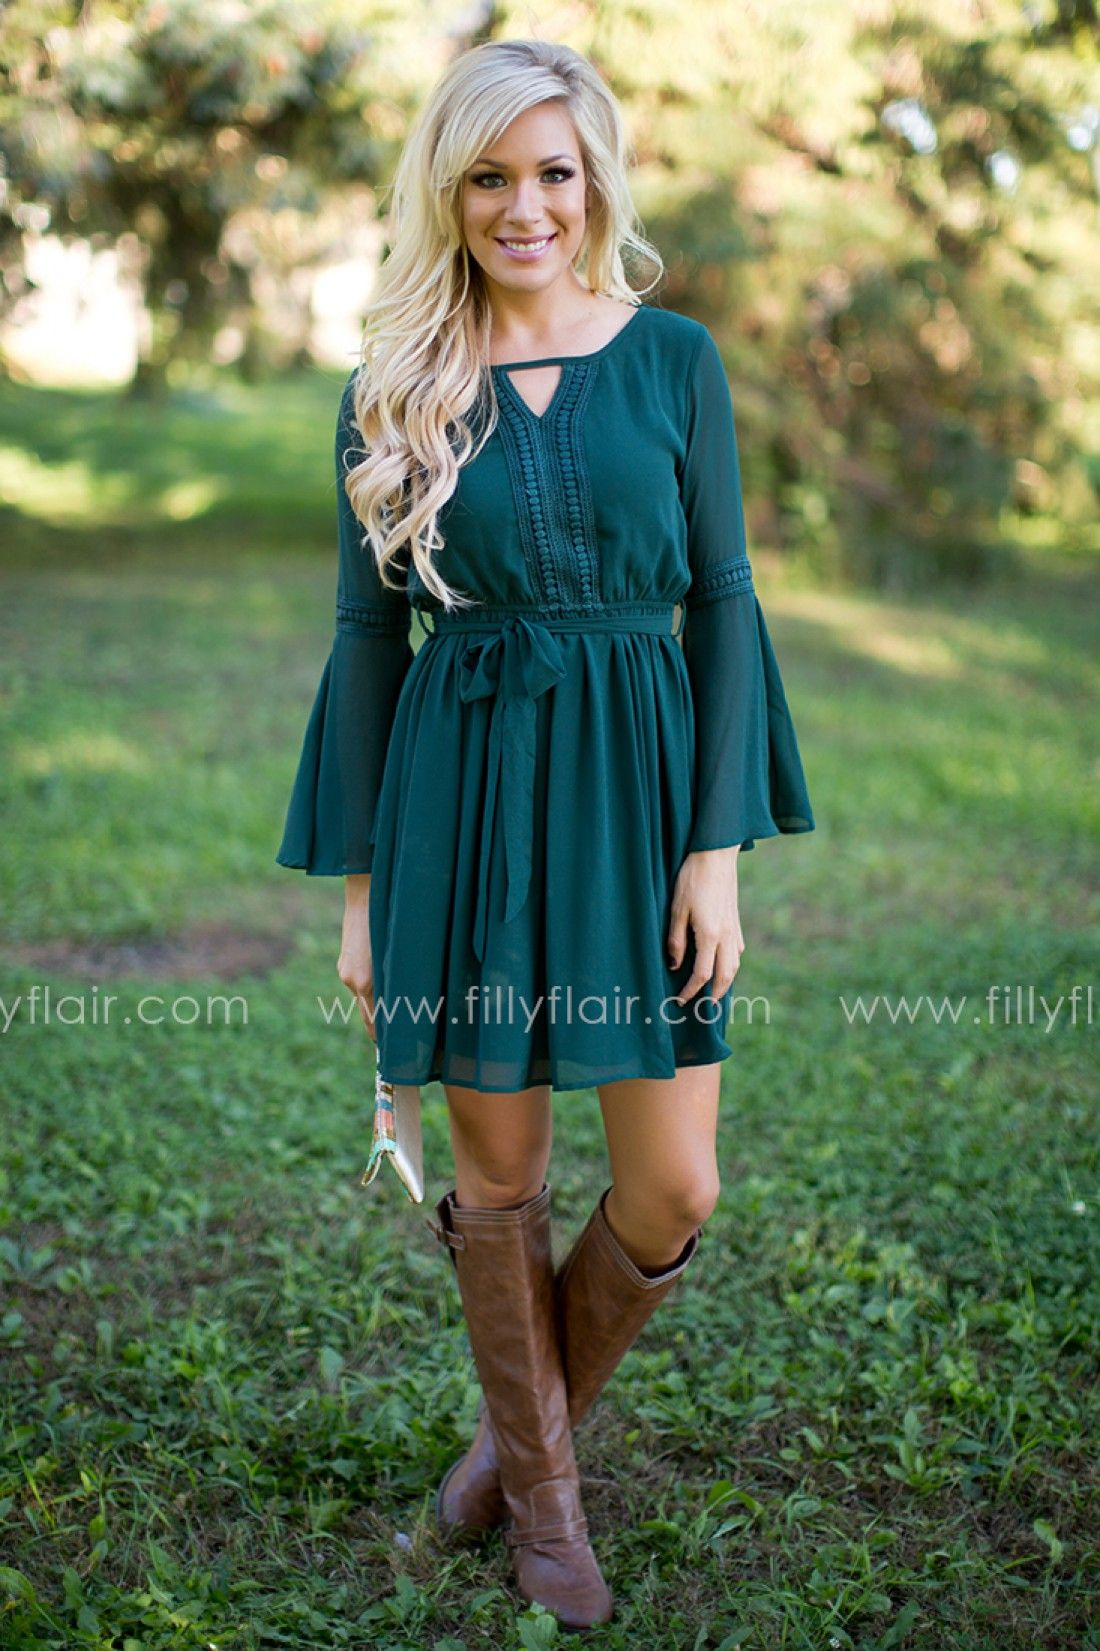 Beautiful Fall Dress With Boots For Fall